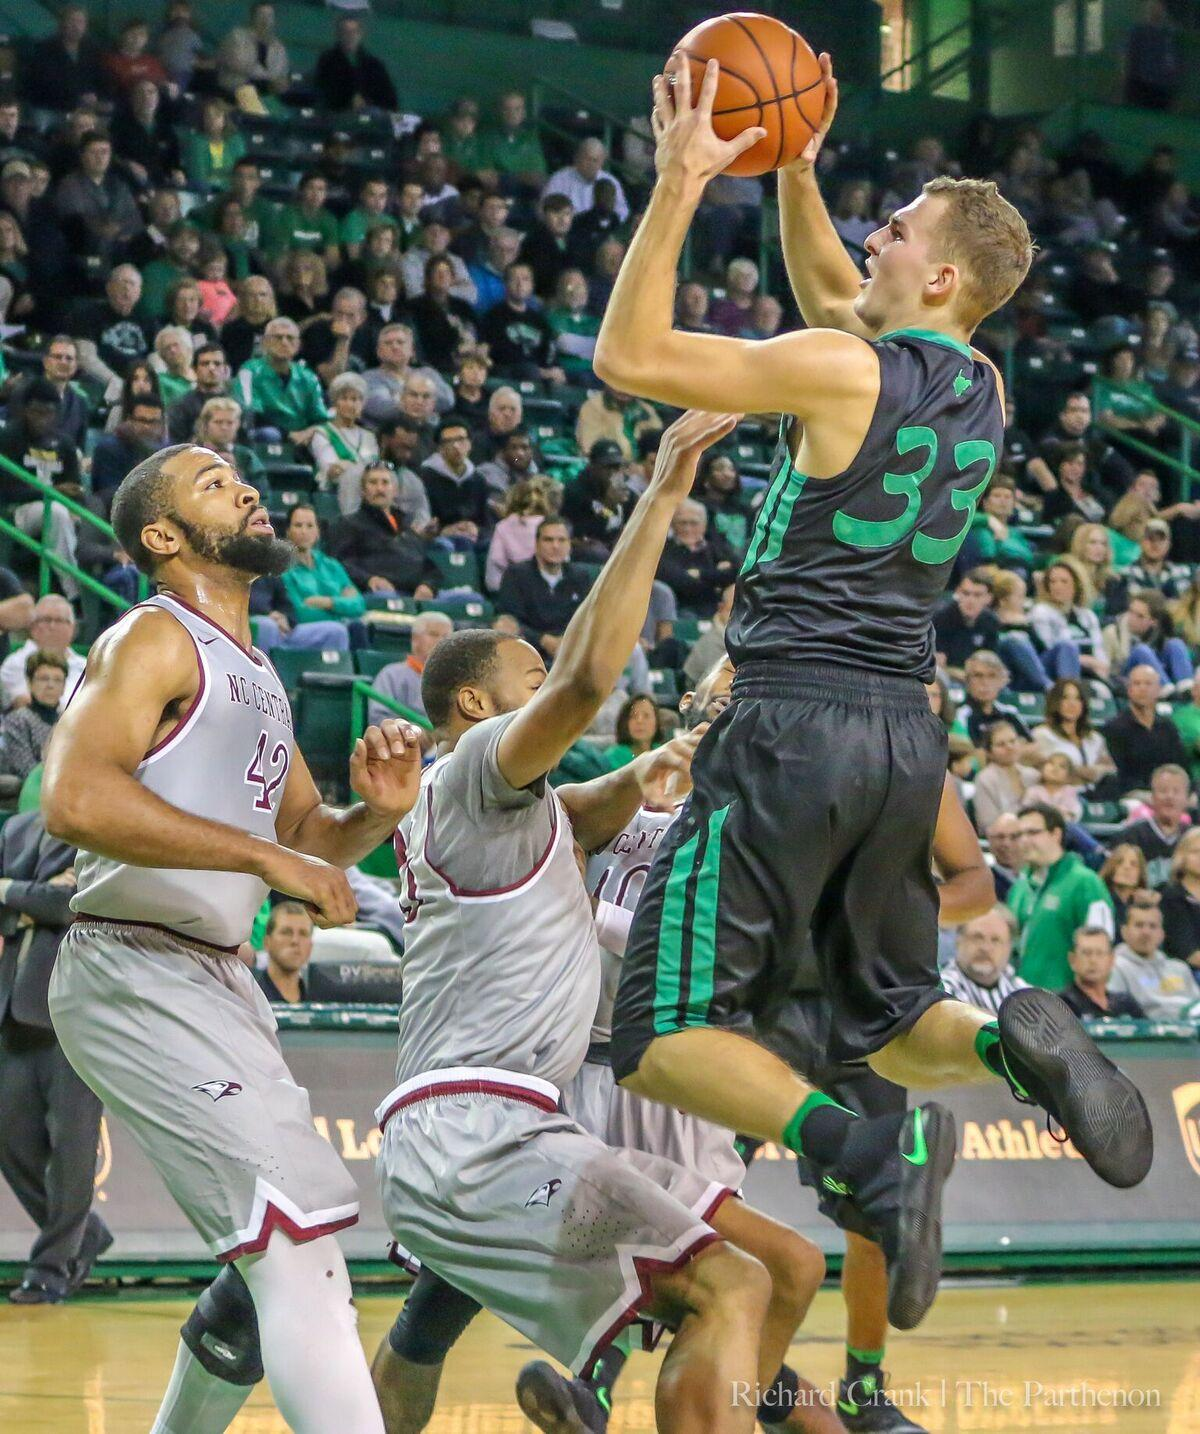 Marshall guard Jon Elmore (33) drives to the basket against North Carolina Central on November 12. Elmore is one of nine players from the state of West Virginia on the team.